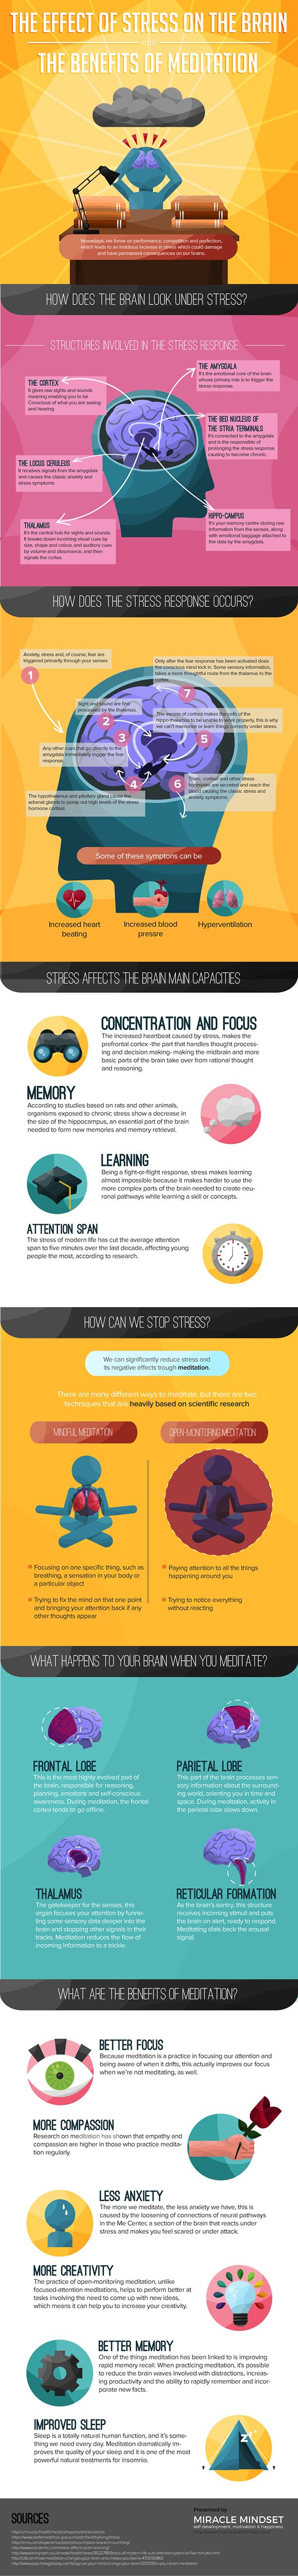 Infographic about the effects of stress on the brain, how does the stress response looks like and what are the main benefits of meditation